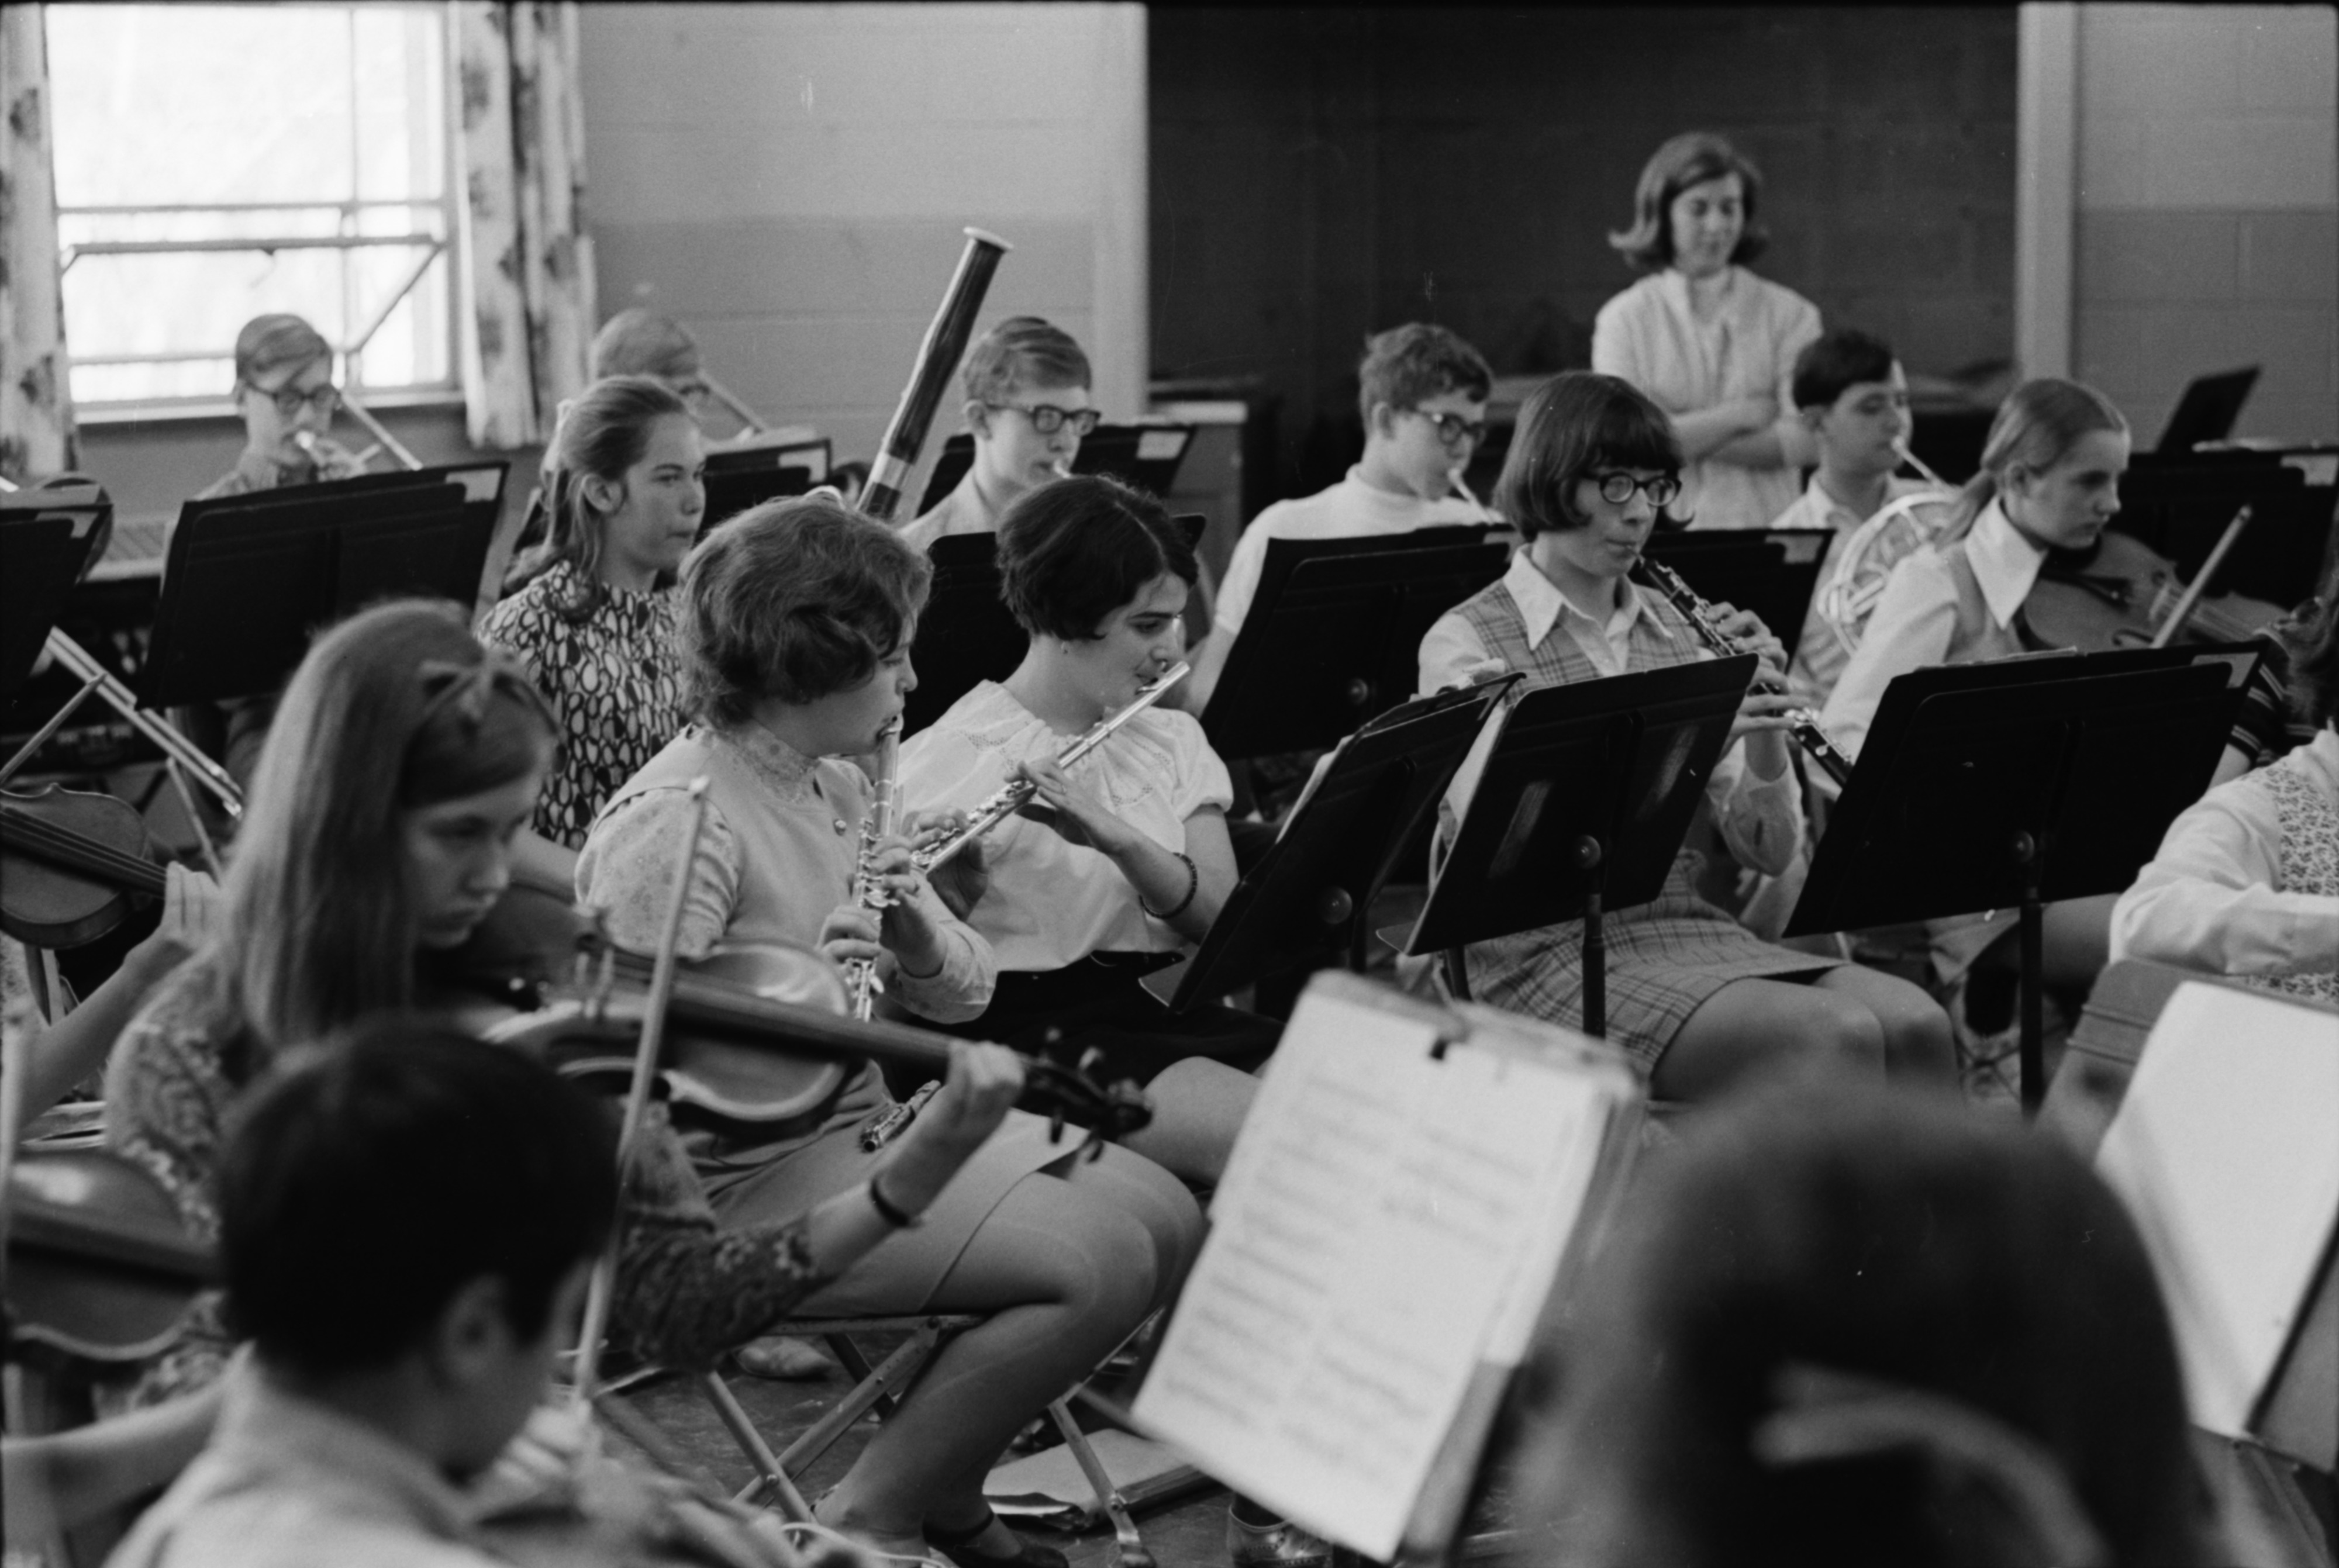 Rehearsal for Ann Arbor Public Schools' annual Spring Music Festival, April 1969 image